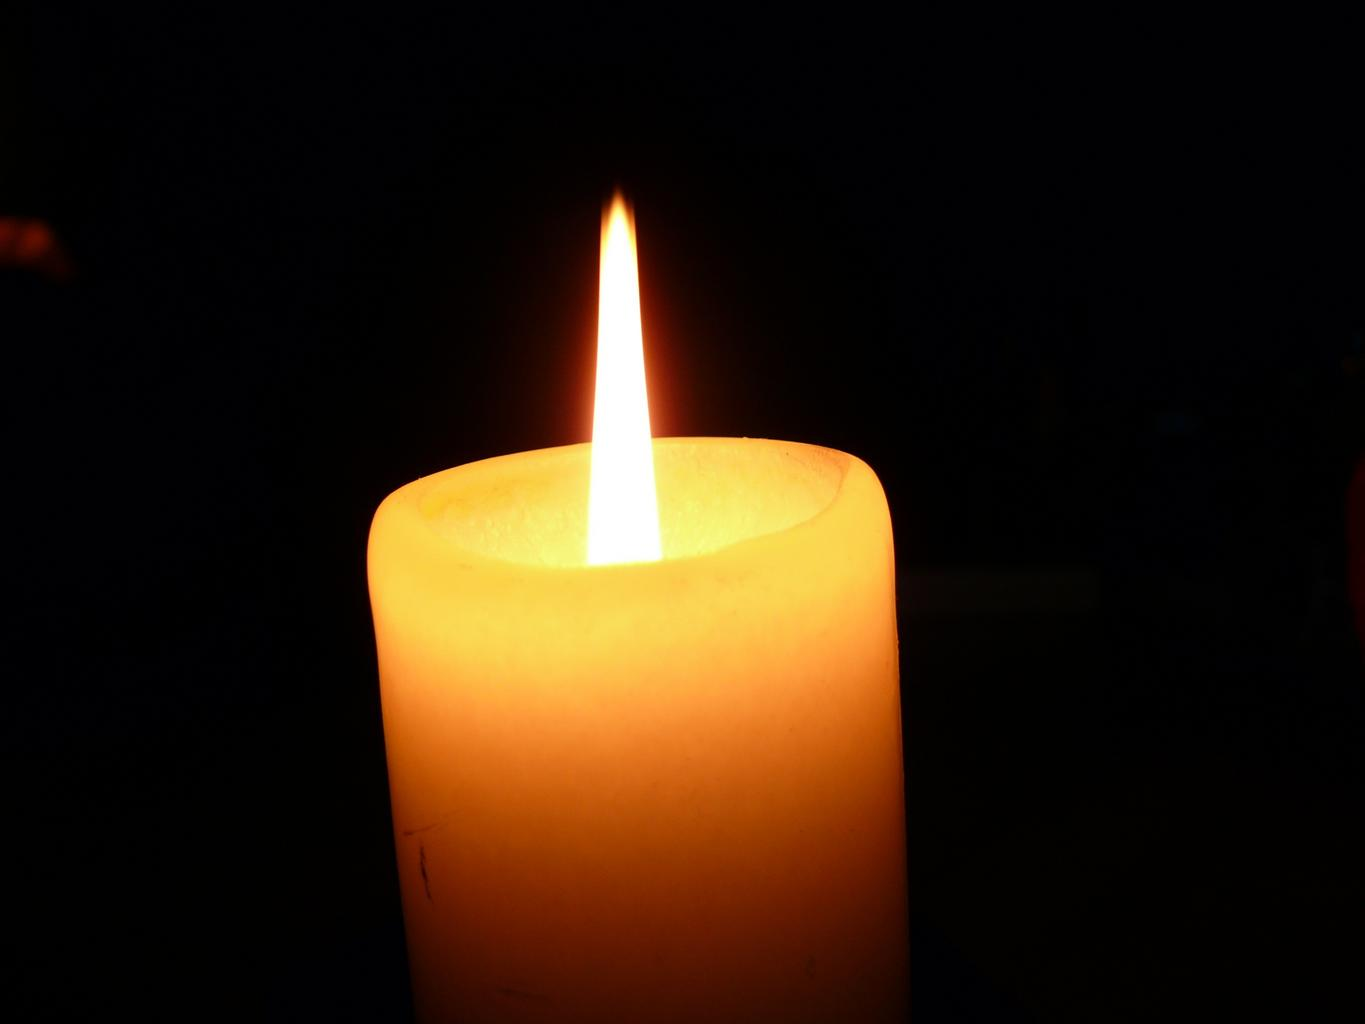 Lighting A Candle In The Darkness | Affilate Stuff